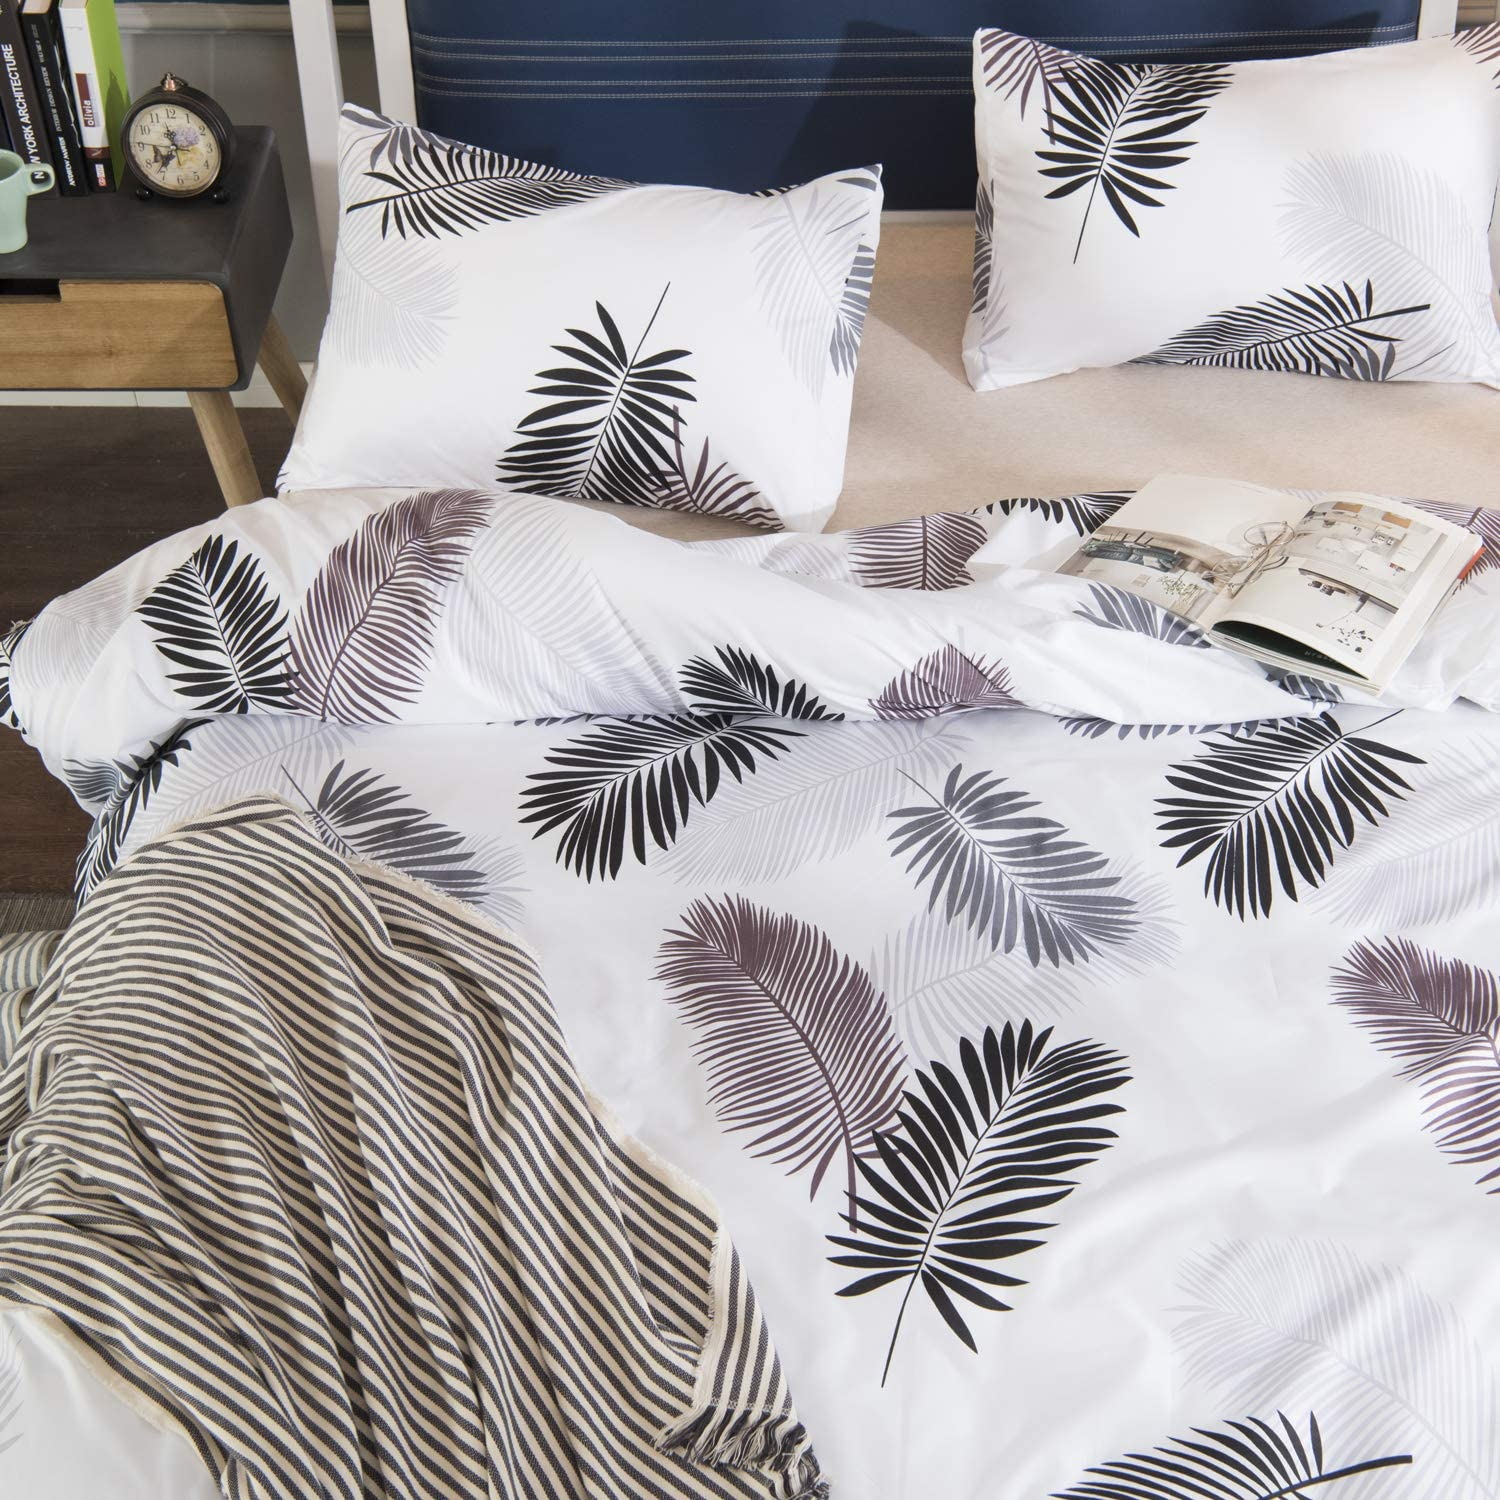 TEALP Duvet Cover Pillow Shams Cases Beddding Set 1800 Thread Count Microfiber Hotel Luxury Soft Breathable Home Deco 3pcs No Comforter No Sheet Black Feather Print on White, Queen